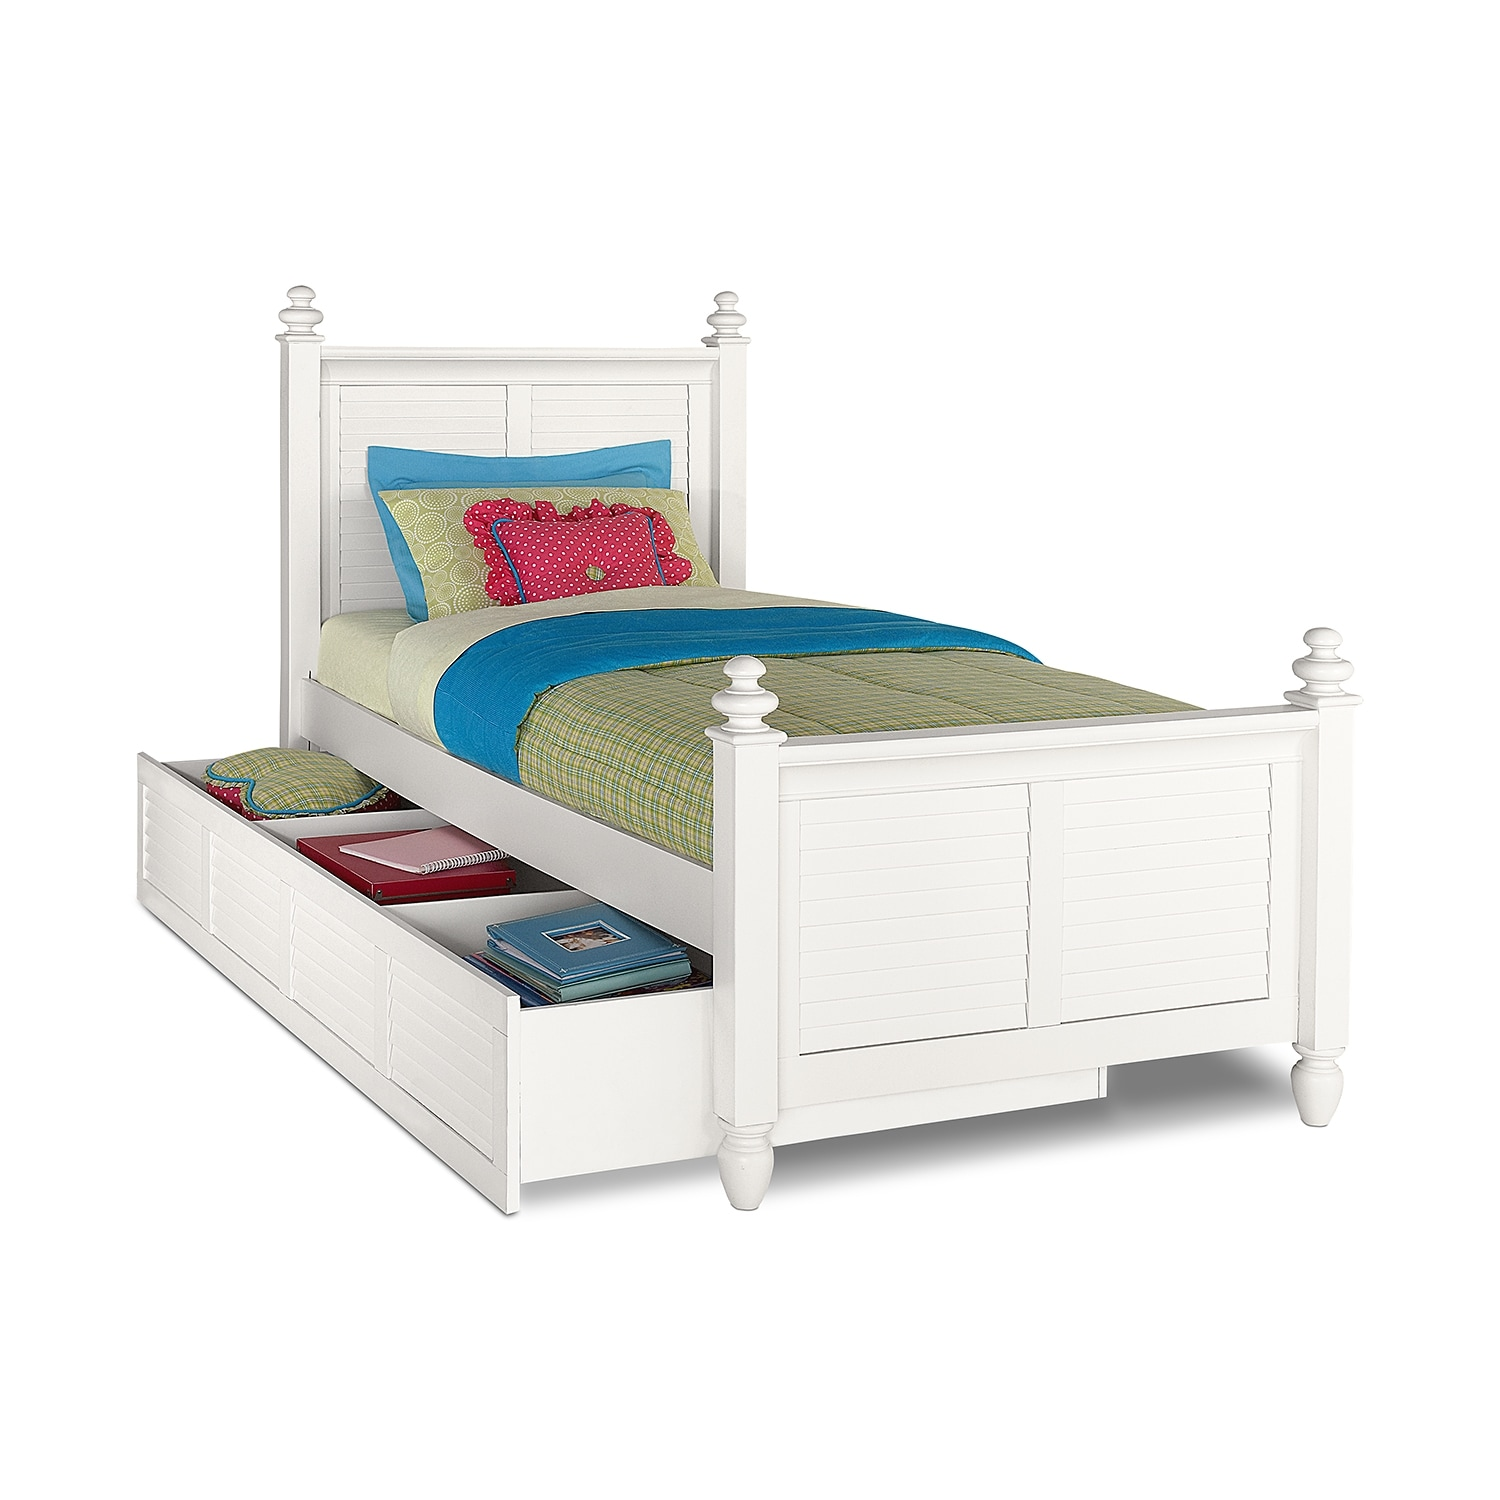 Seaside White Twin Bed with Trundle